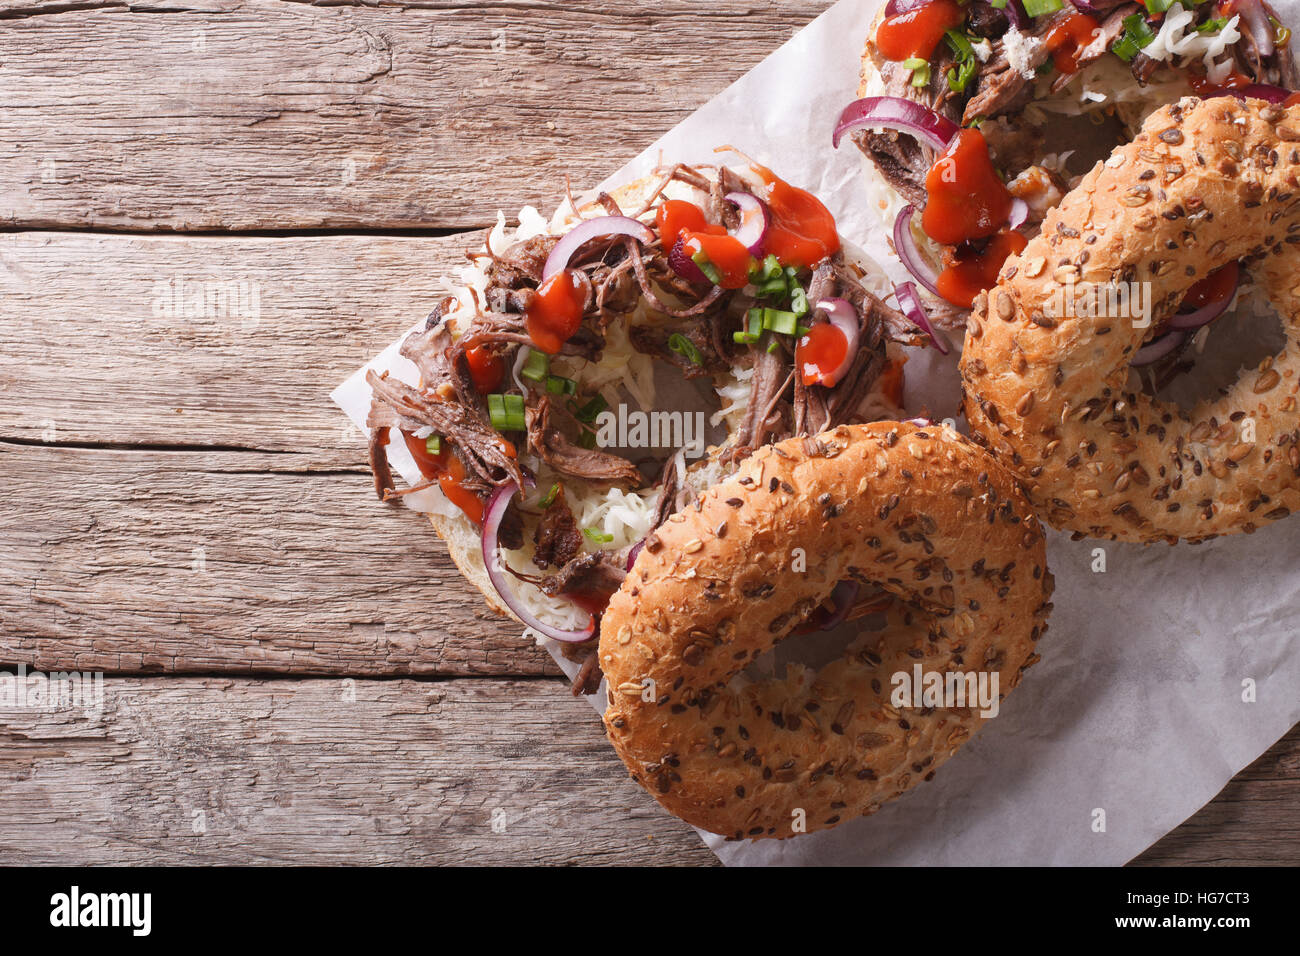 Bagels with Pulled pork, onions, cabbage and sauce on the table. horizontal view from above - Stock Image